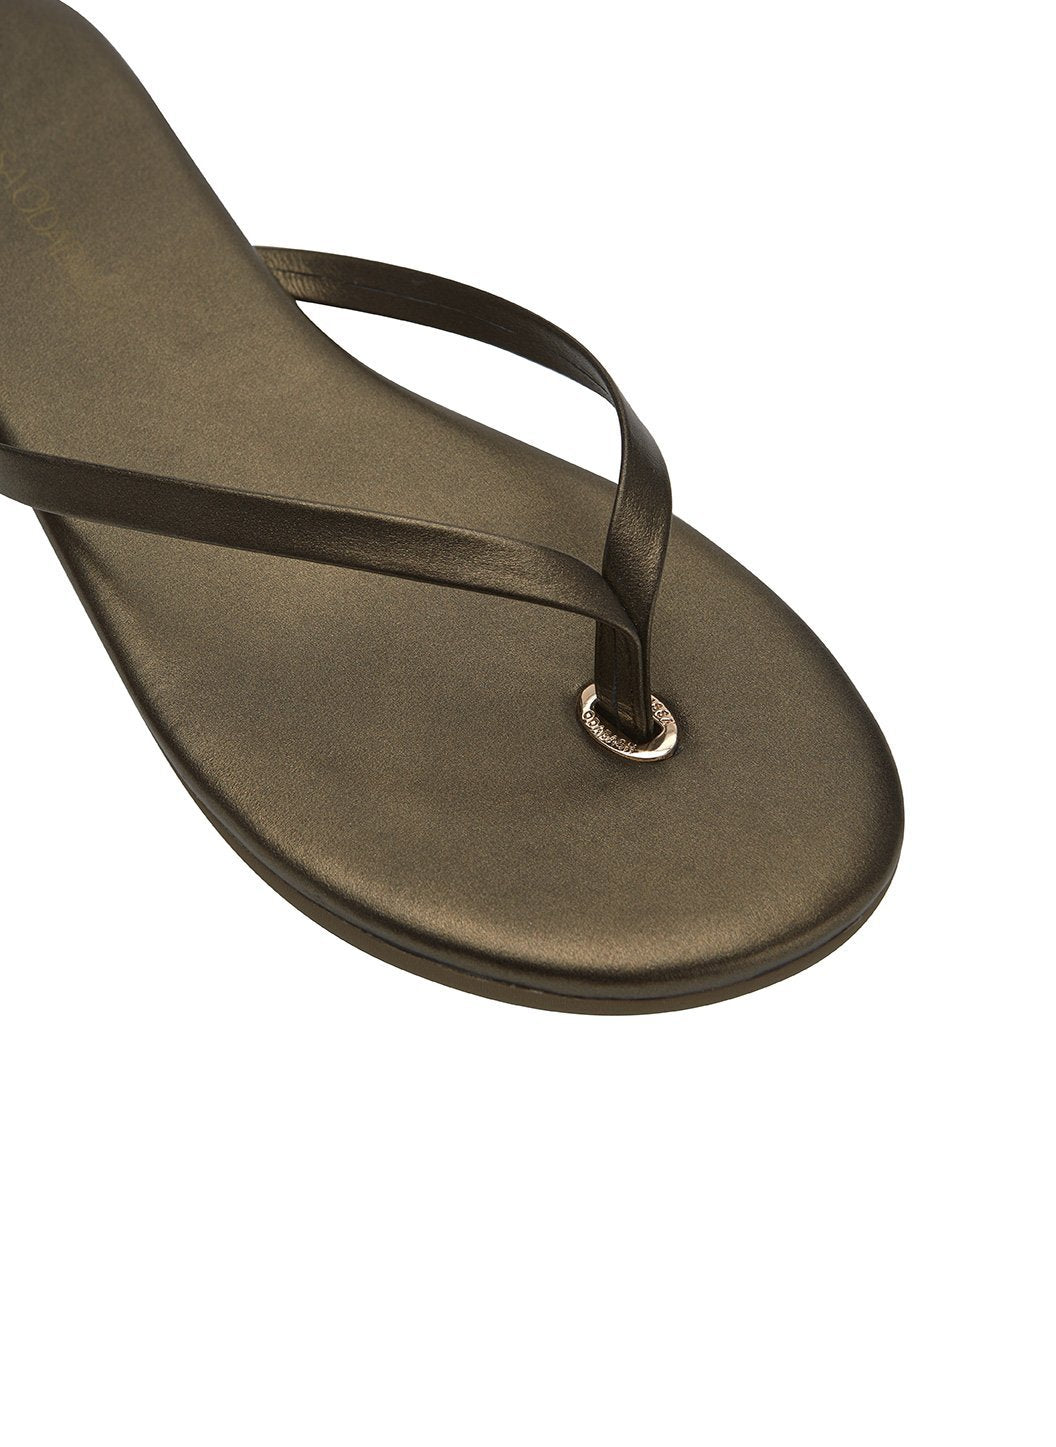 flip flop leather bronze 2019 3